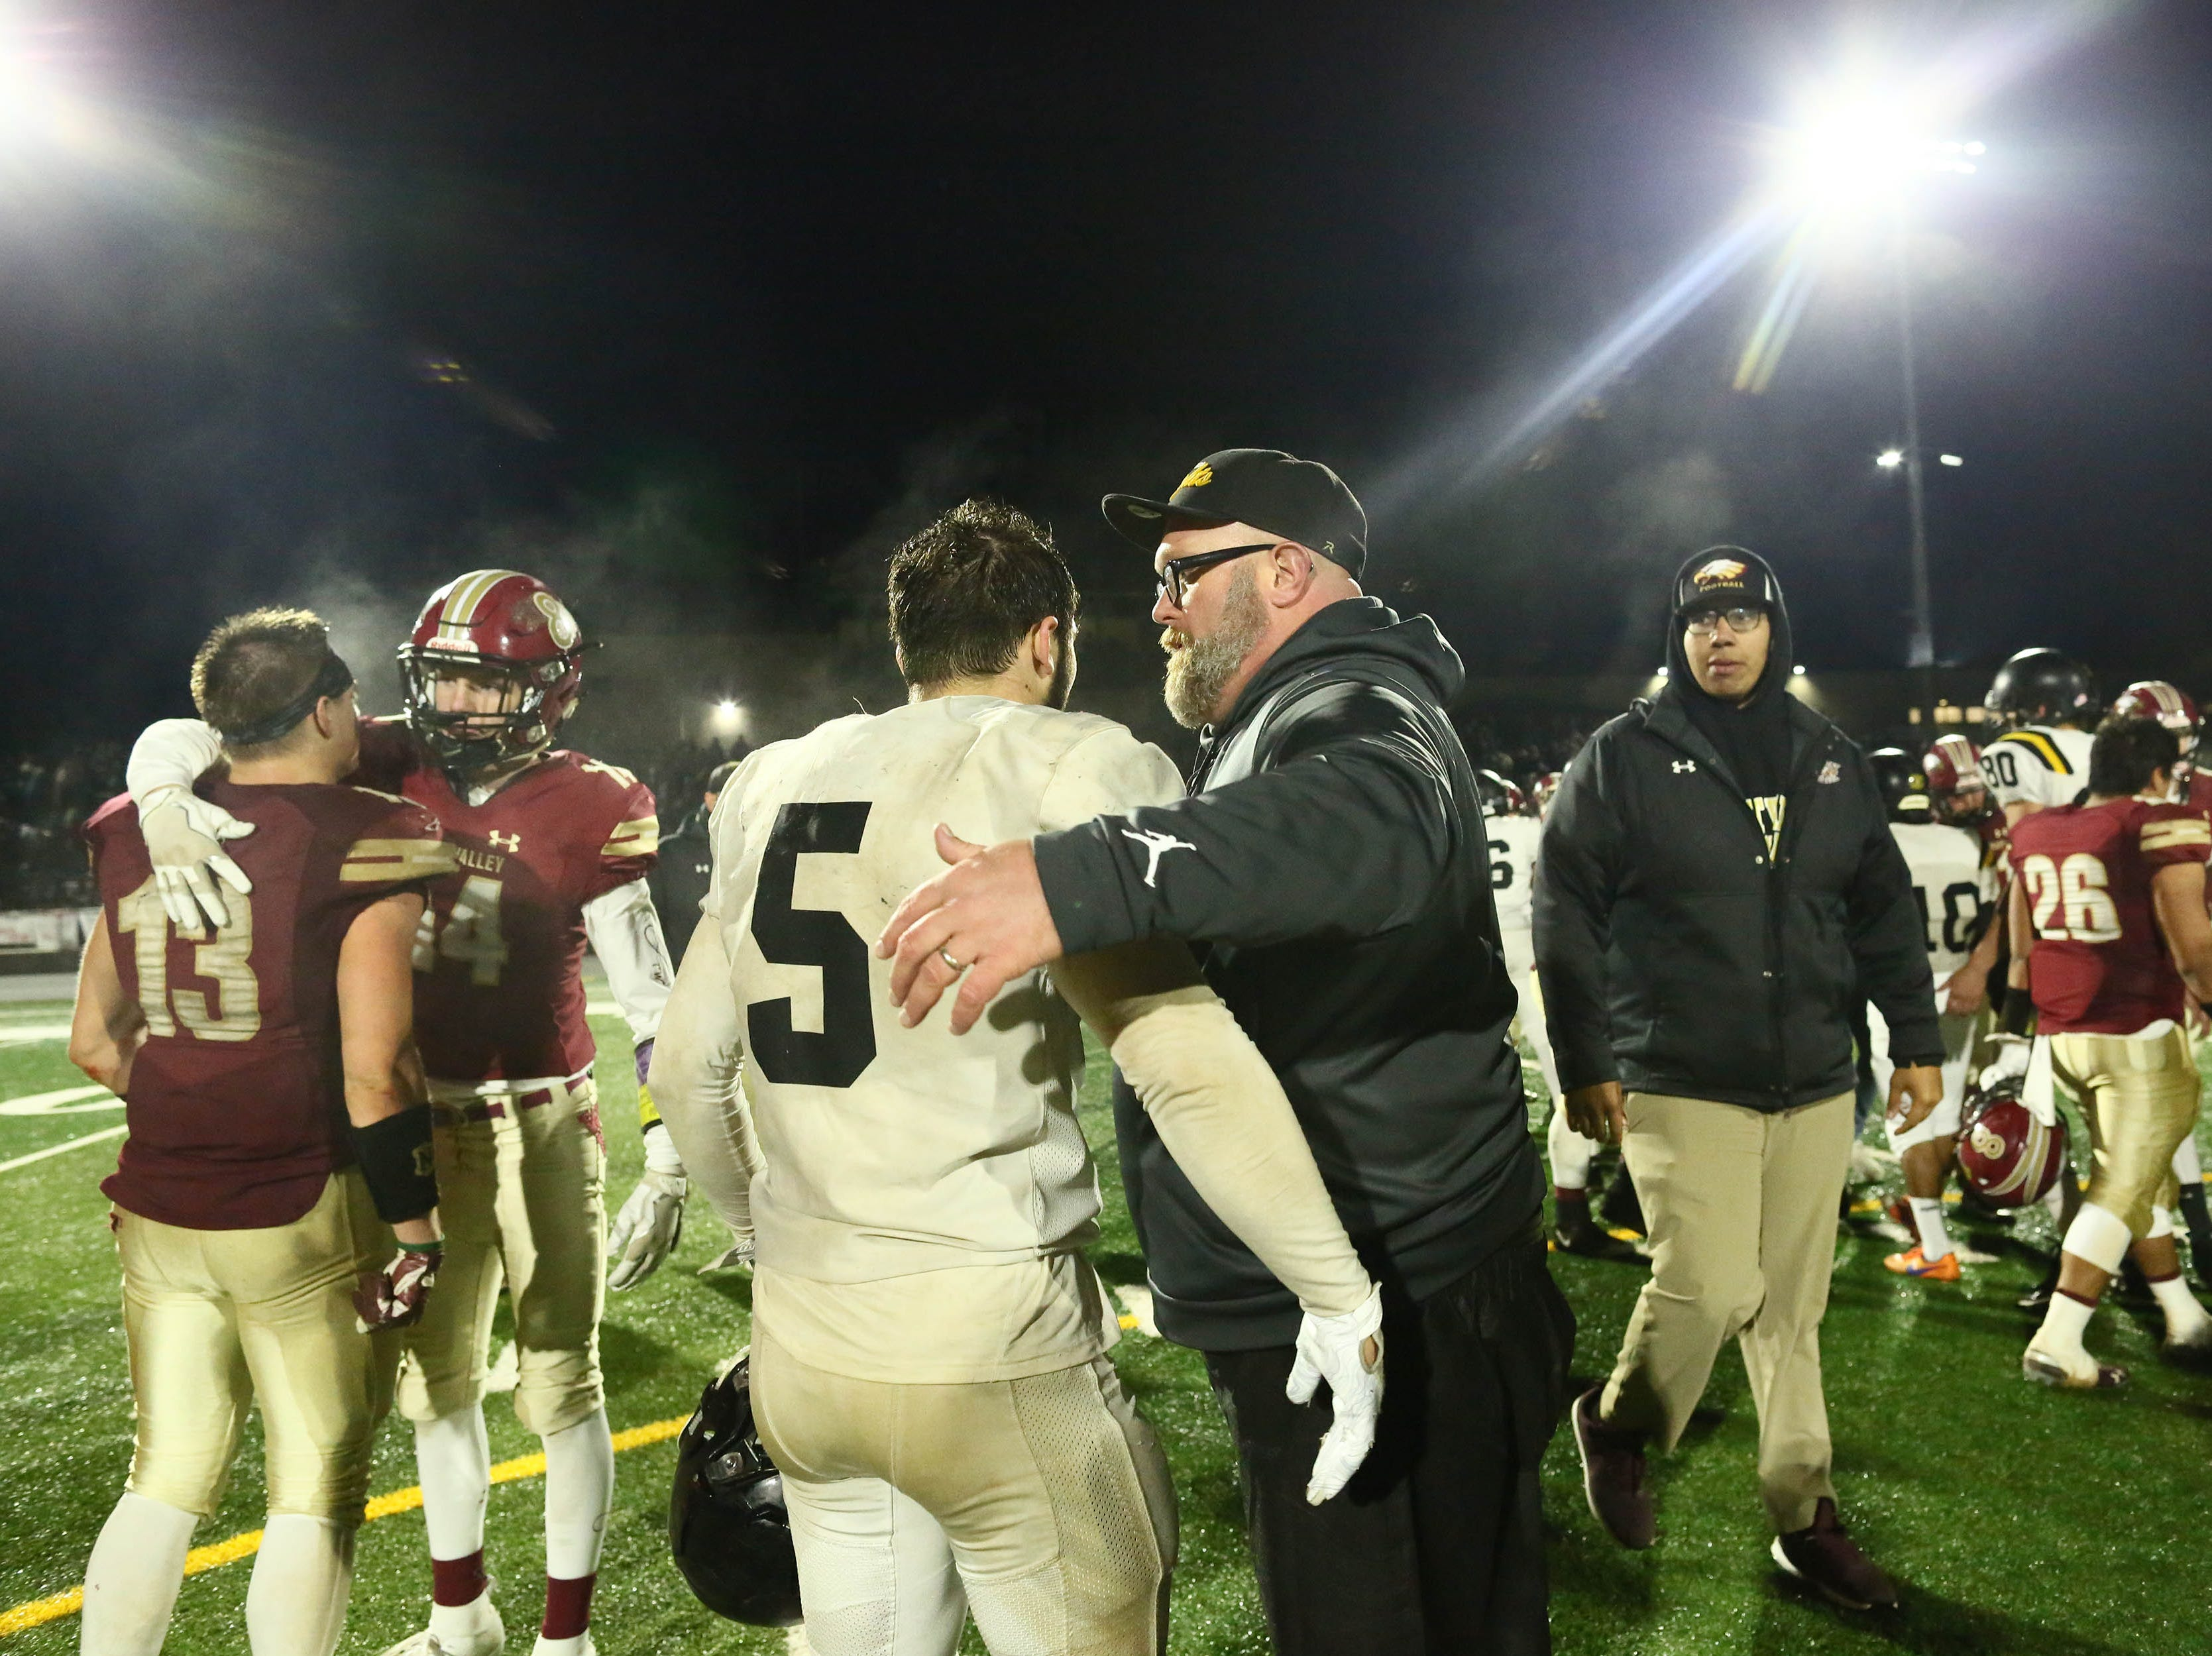 Rio Linda head coach, Jack Garceau talks to Cameron Skattebo (5) after the Knights won over West Valley on Friday night.   Rio Linda beat the Eagles, 21-13, to take the NorCal regional title for Division 5-AA in Red Bluff on Friday, Dec. 7.